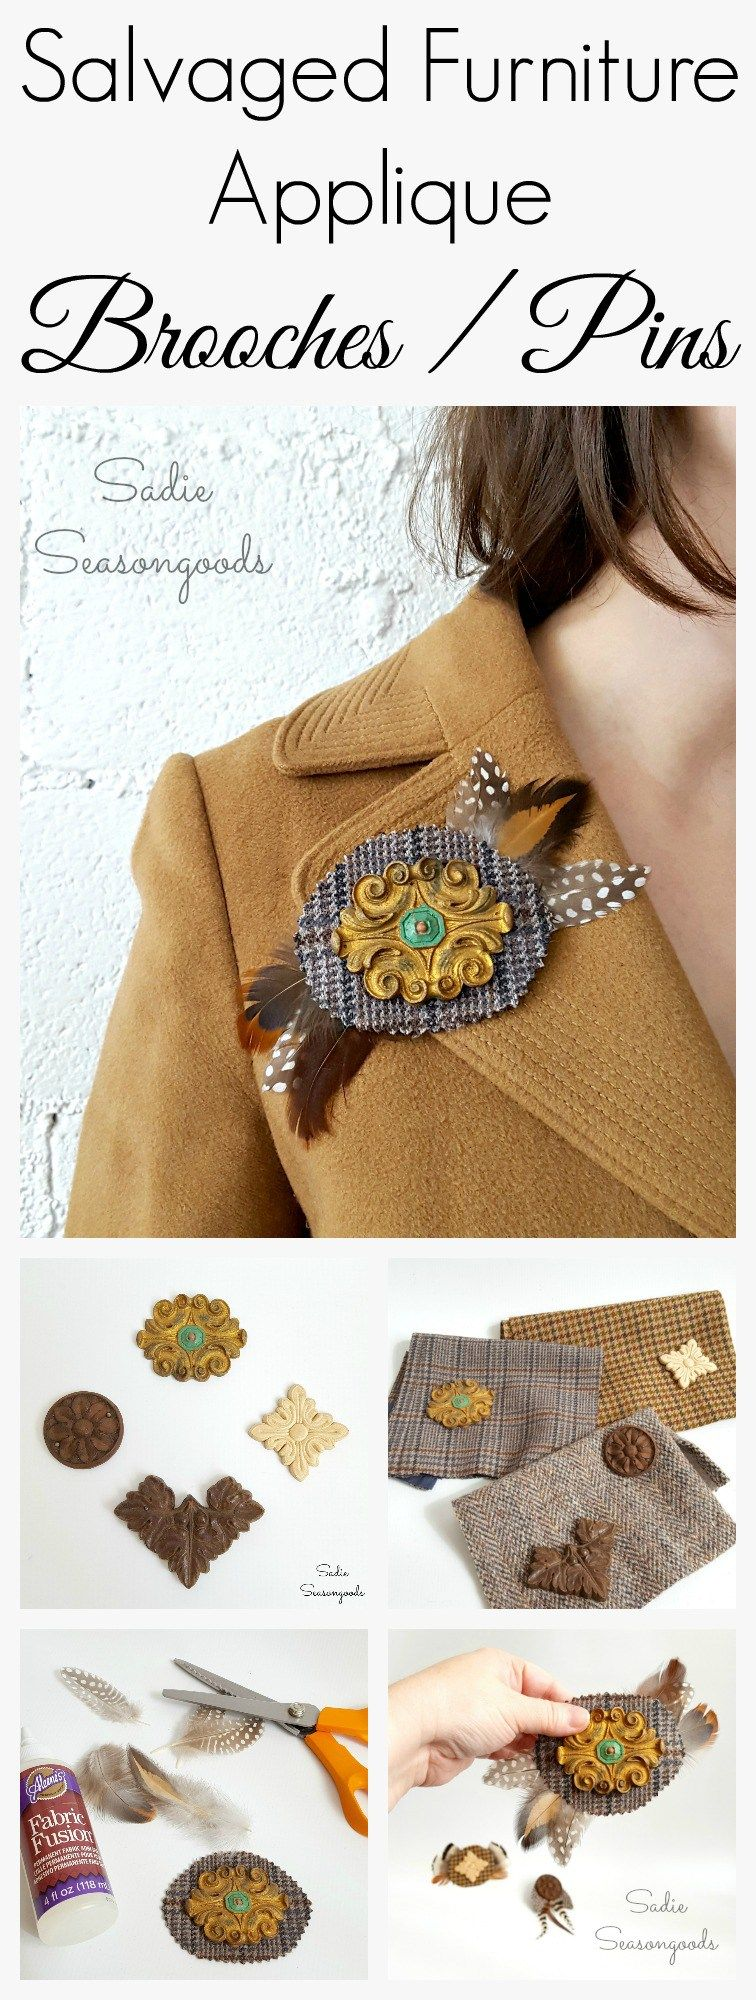 Make a statement brooch for your fall or winter coat by repurposing a vintage furniture applique, tweed from the thrift store, and humanely collected feathers. Who would have thought you could wear architectural salvage?! But furniture appliques make terrific medallions and add panache to your coat without shiny bling. Fun, easy DIY upcycle project from #SadieSeasongoods / www.sadieseasongoods.com